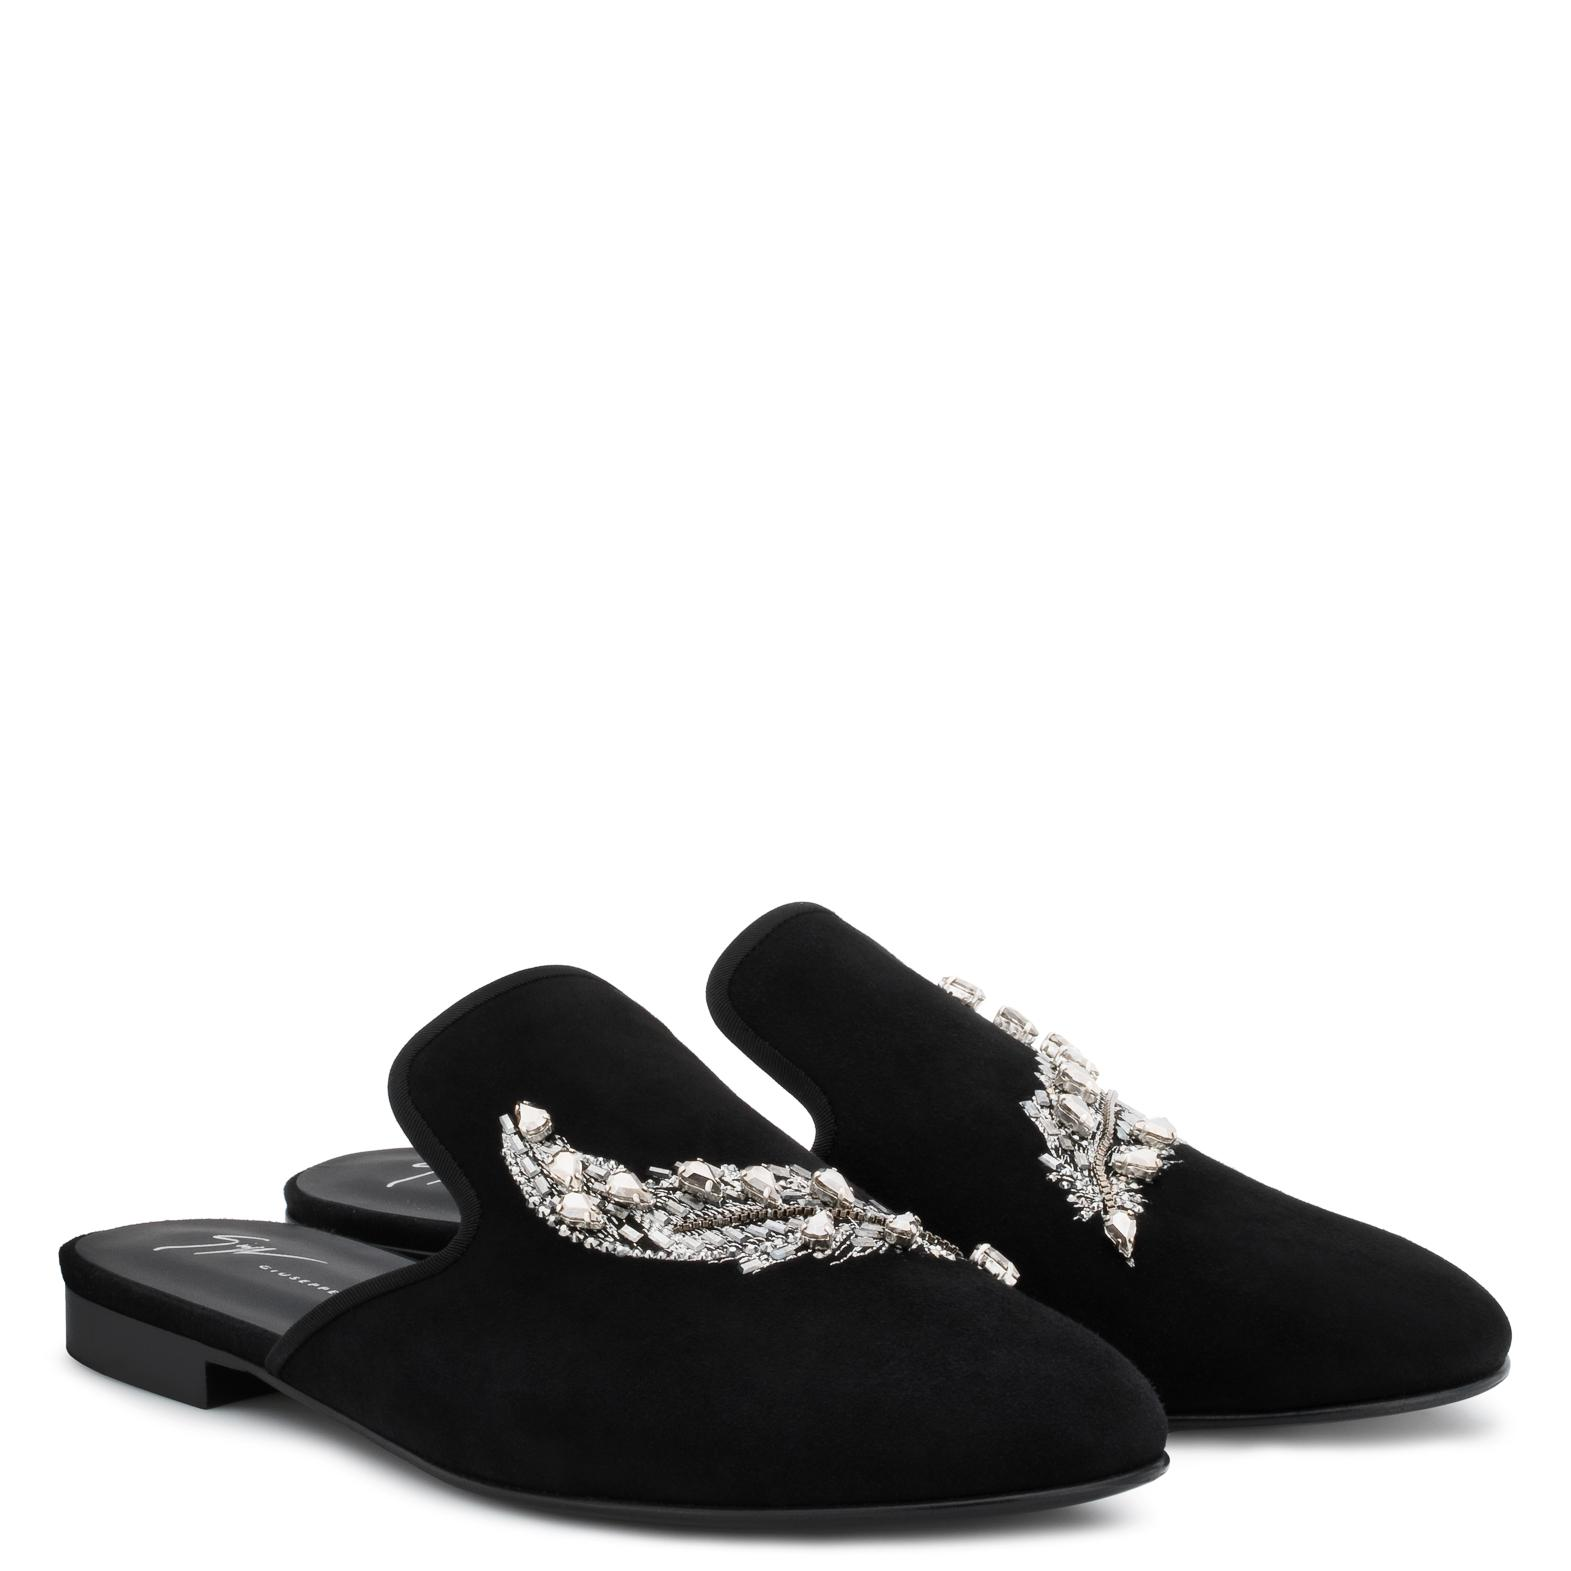 Giuseppe Zanotti Suede flat slipper with crystals MYRON qZ3fjk